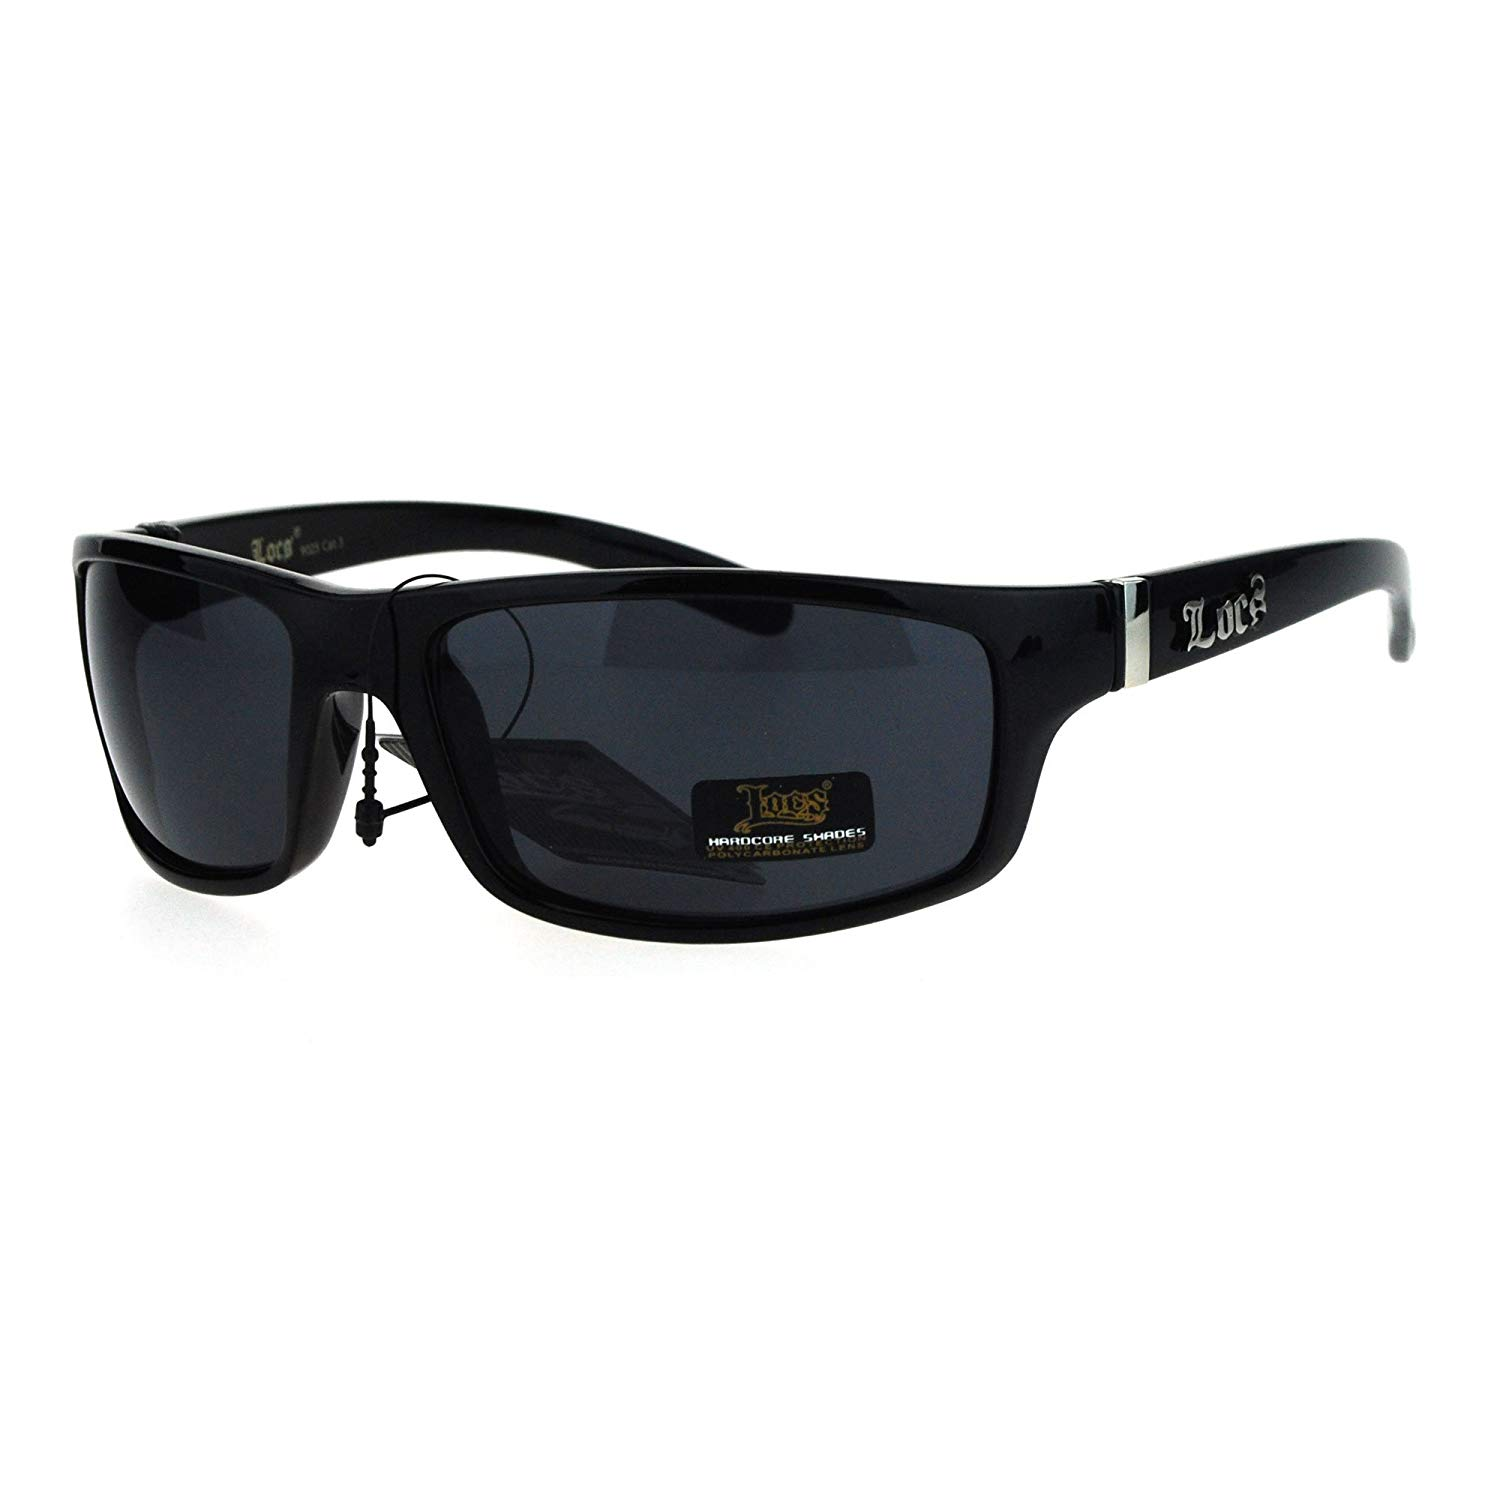 36e4e0671731 Locs All Black Mad Dog Cholo Rectangular Gangster Biker Sunglasses